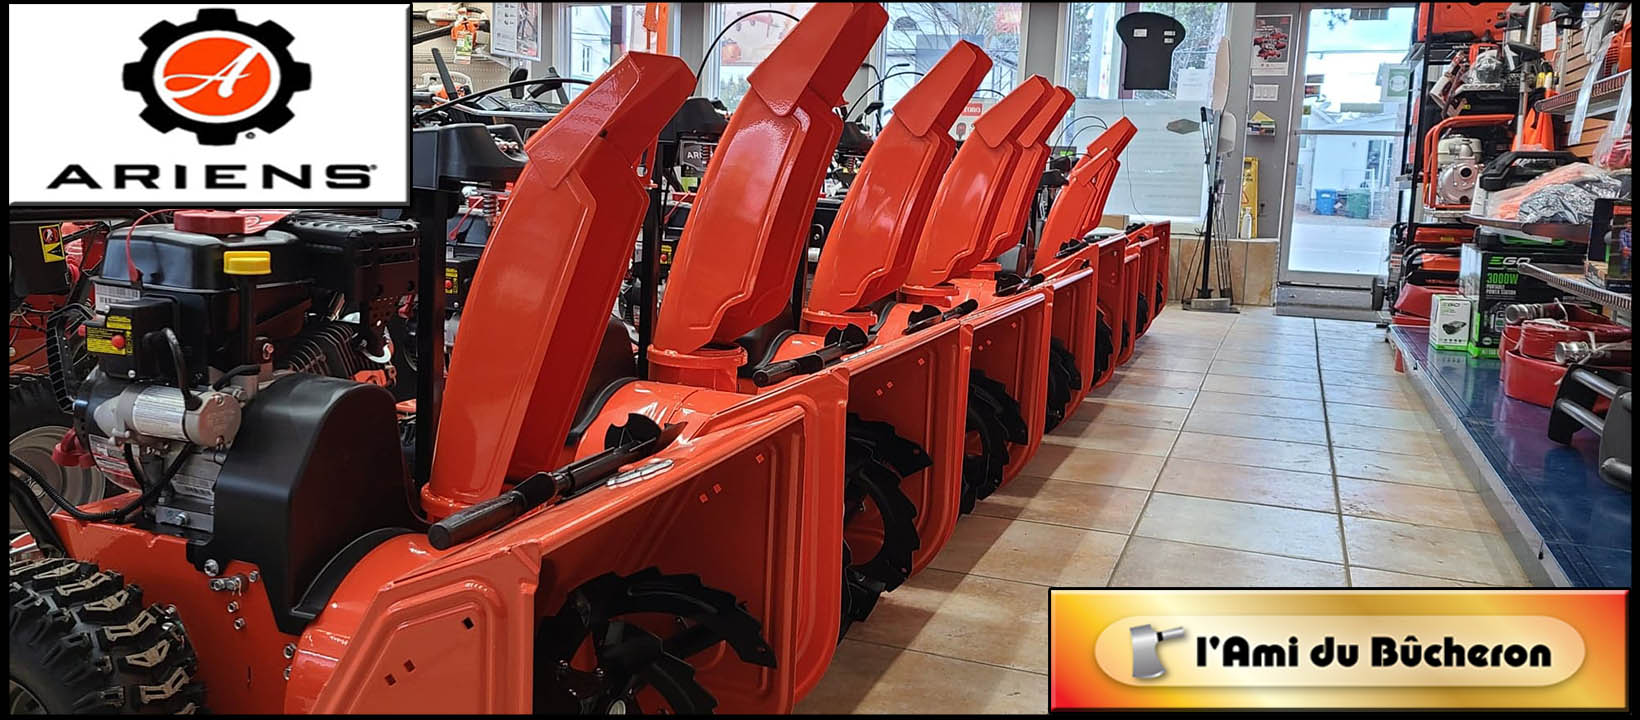 ARIENS SNOWBLOWER DEALER